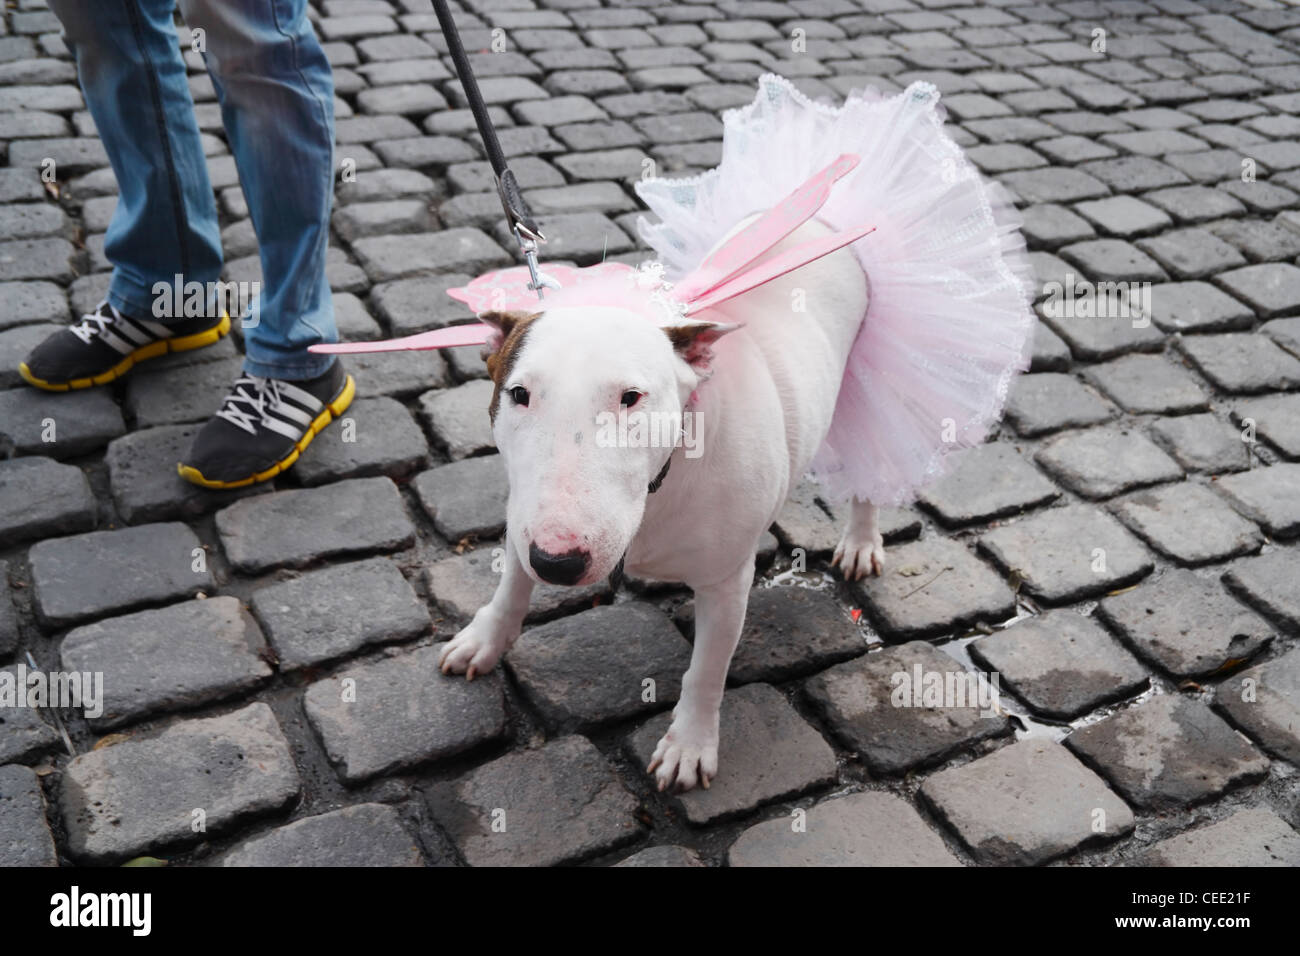 Bull Terrier dressed as Fairy with wings and skirt - Stock Image